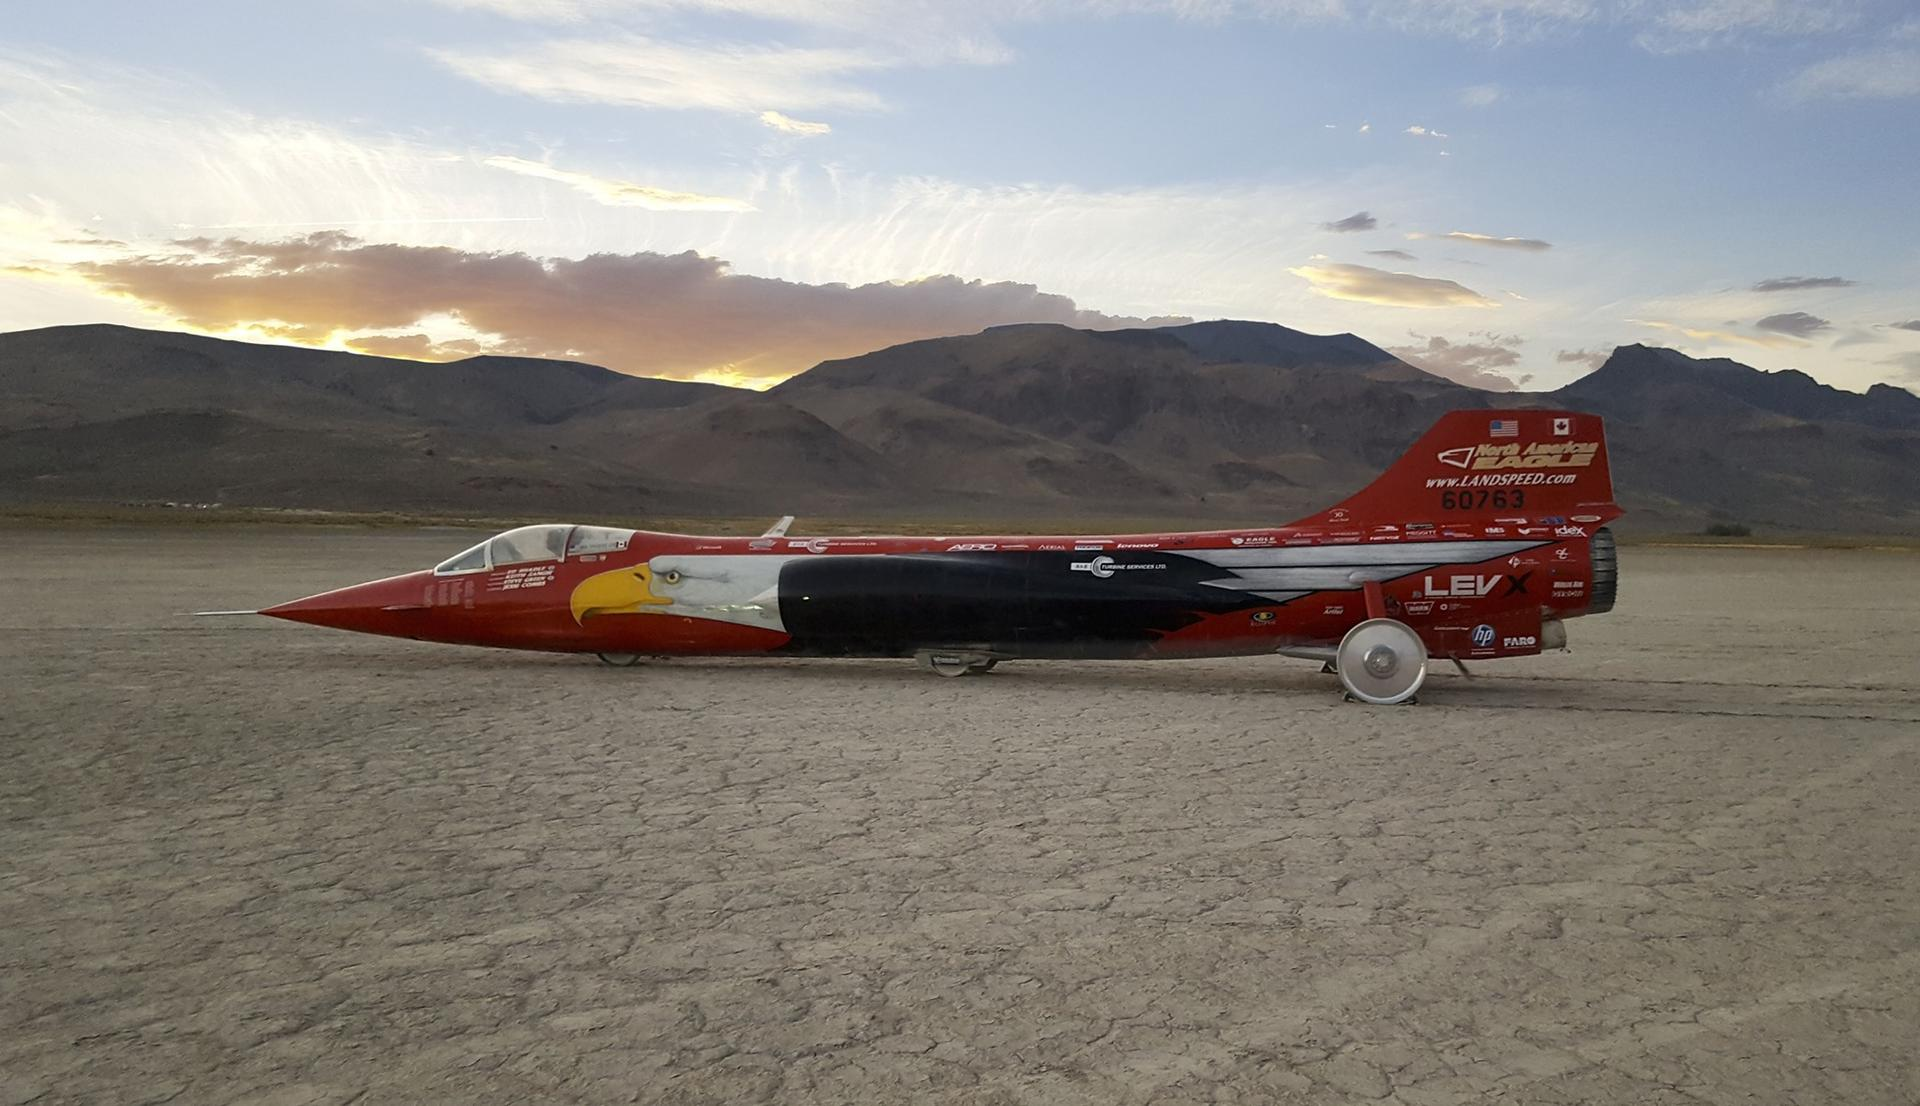 North American Eagle Supersonic Speed Challenger